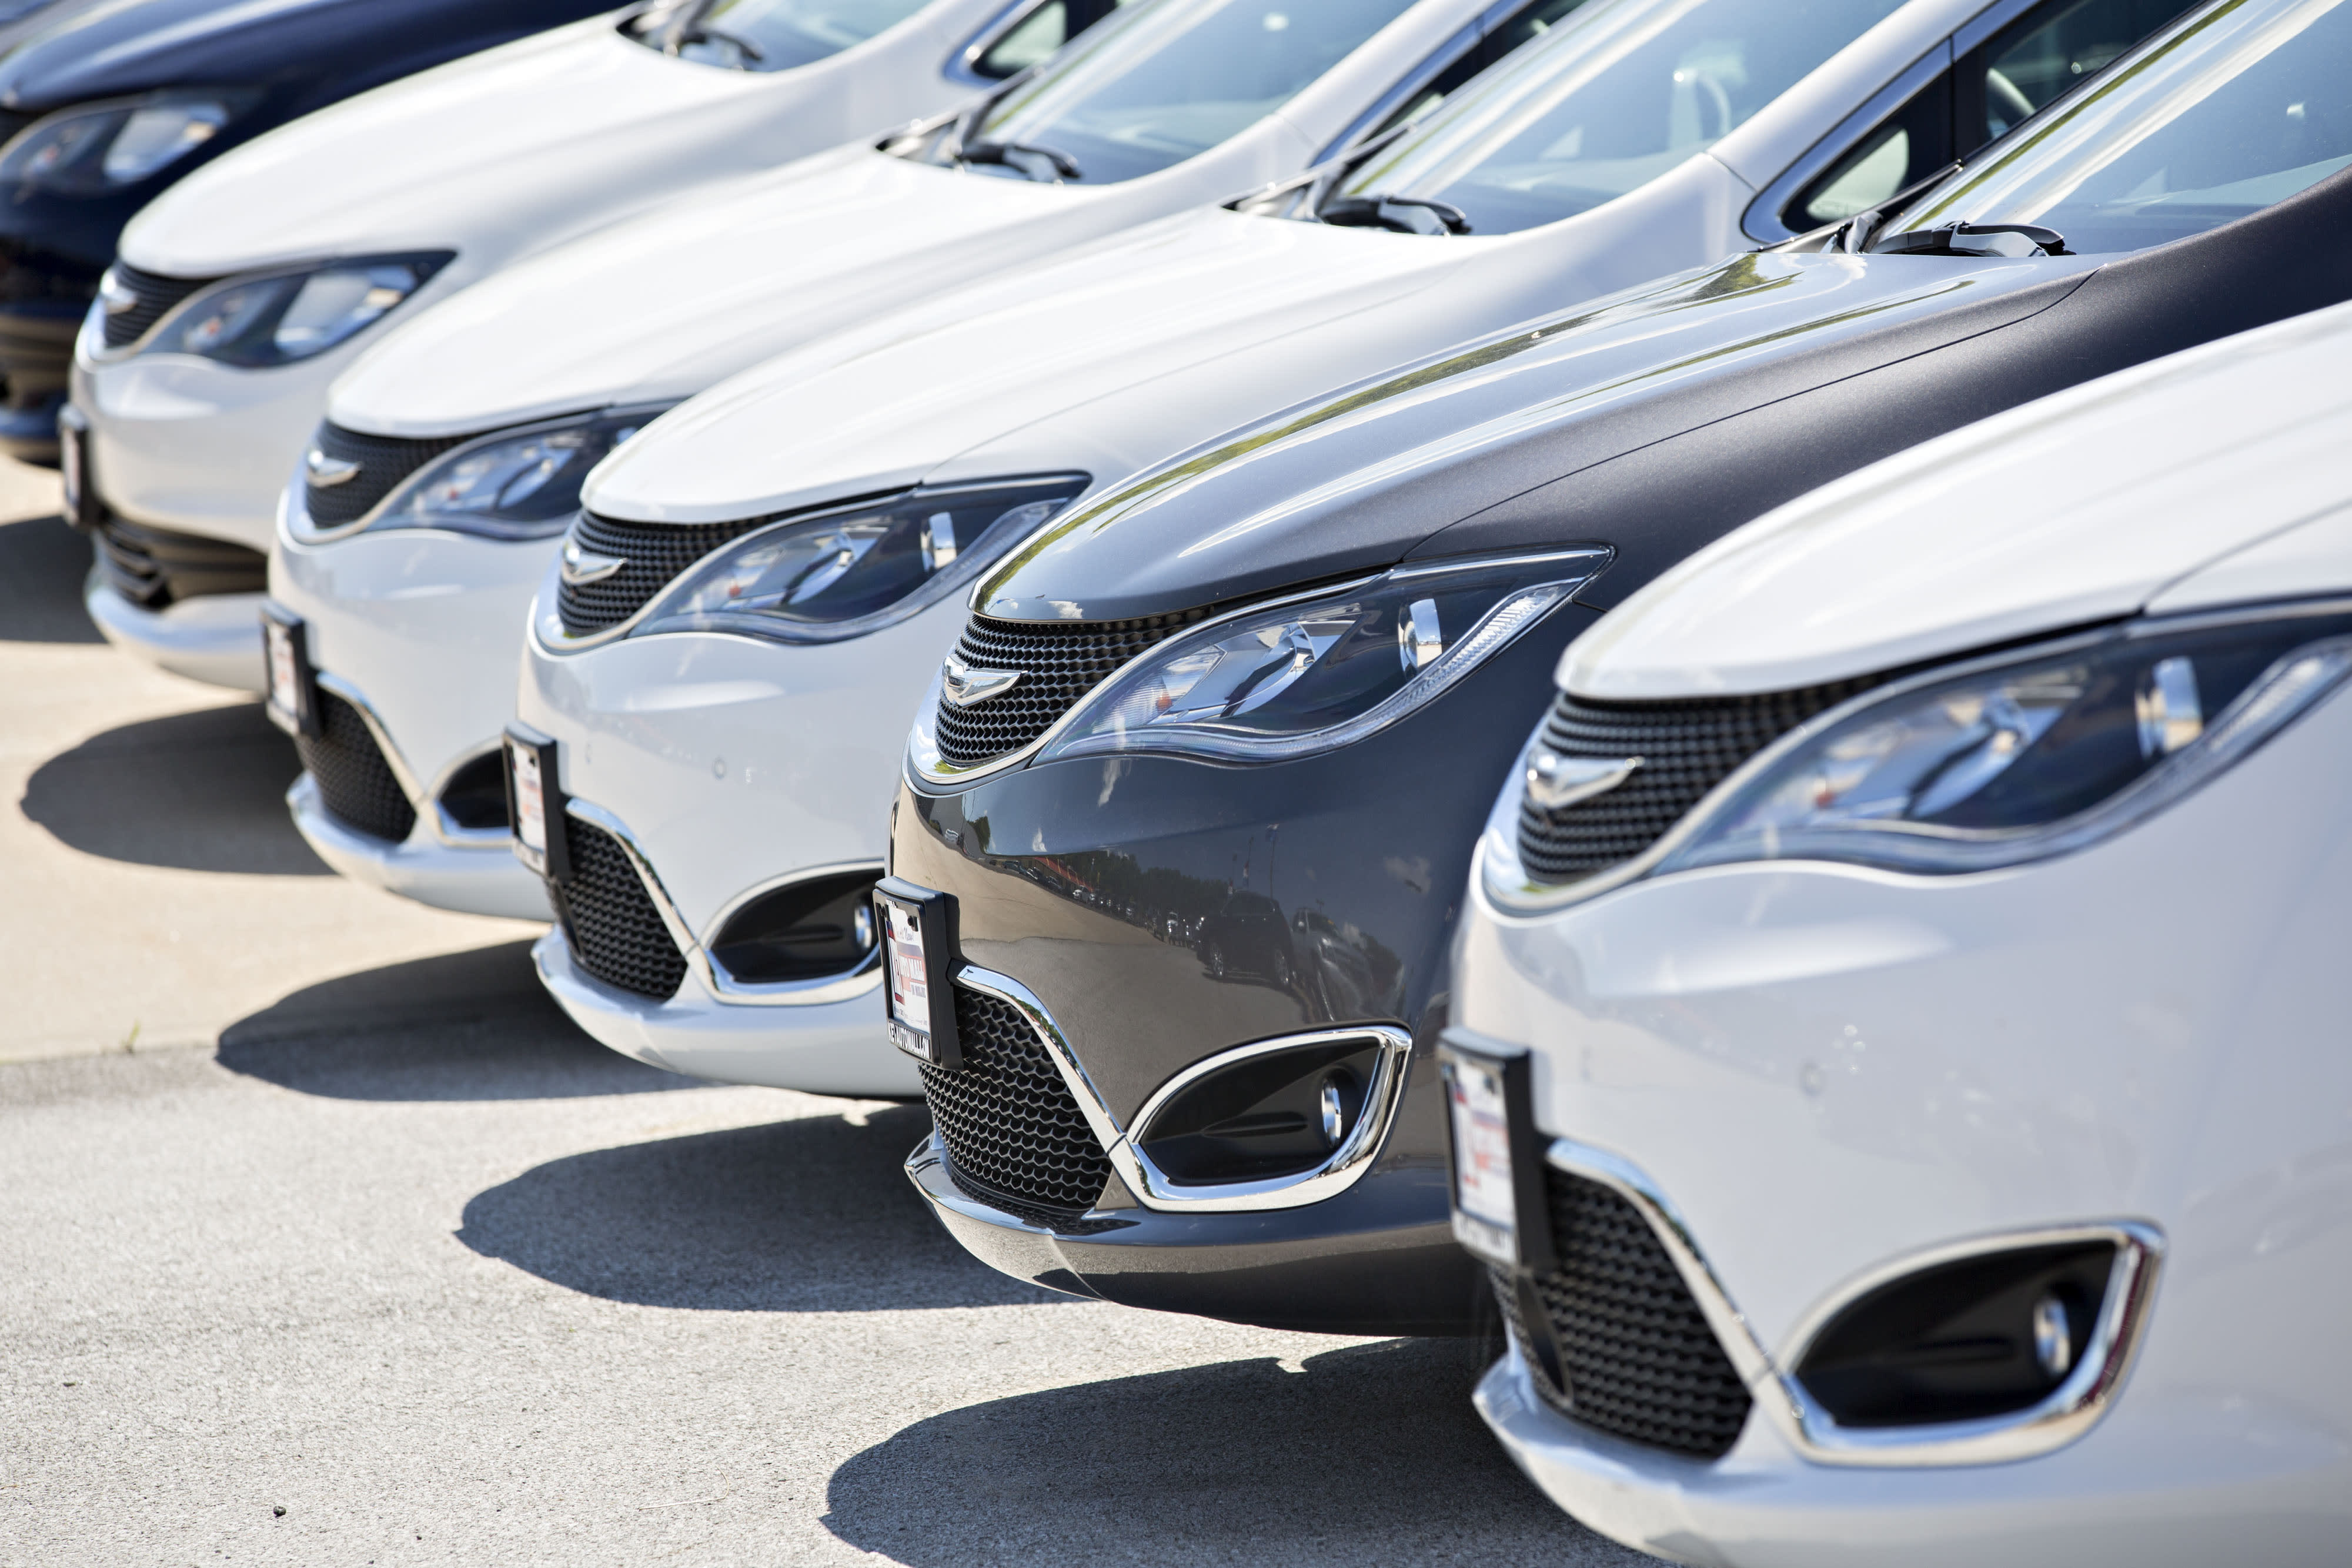 A row of Fiat Chrysler Automobiles (FCA) 2017 Chrysler Pacifica minivan vehicles are displayed for sale at a car dealership in Moline, Illinois, on July 1, 2017.